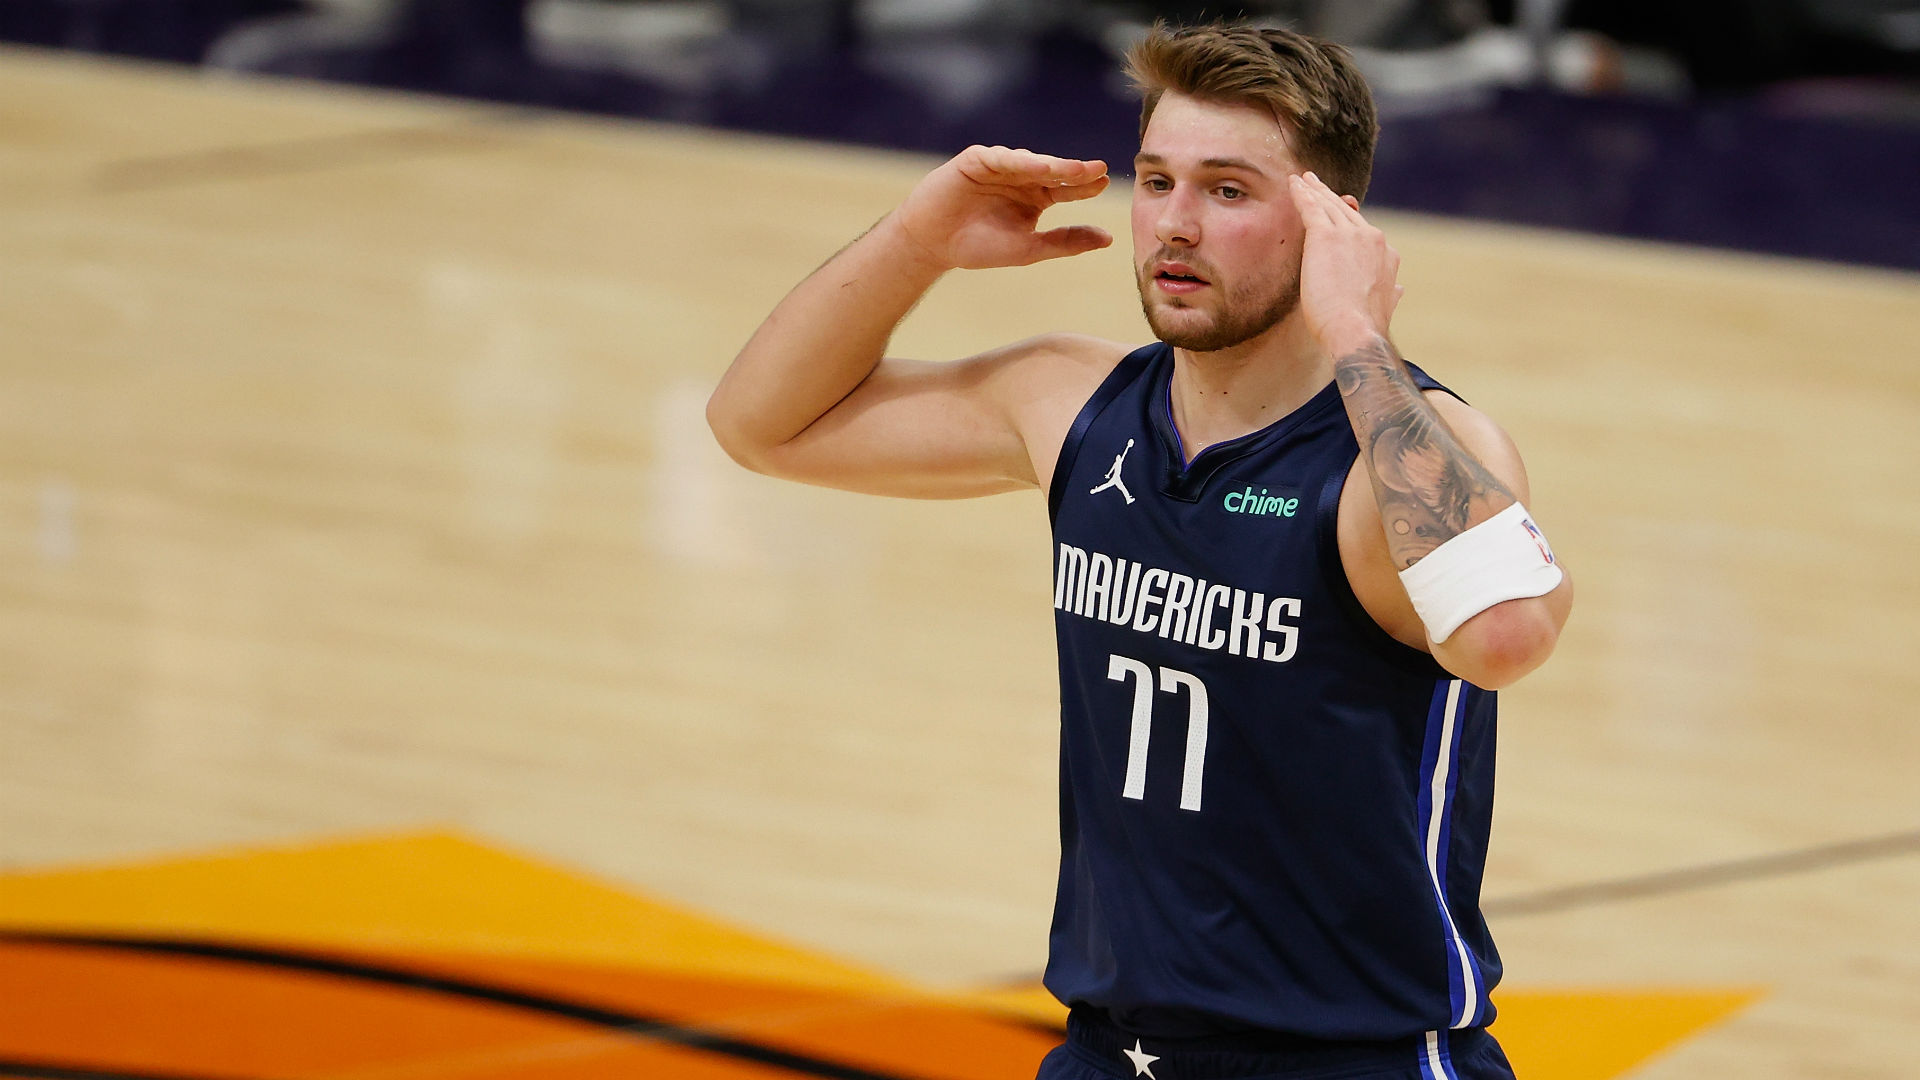 Luka Doncic autograph rookie card sells for $4.6 million; sets record for basketball collectible